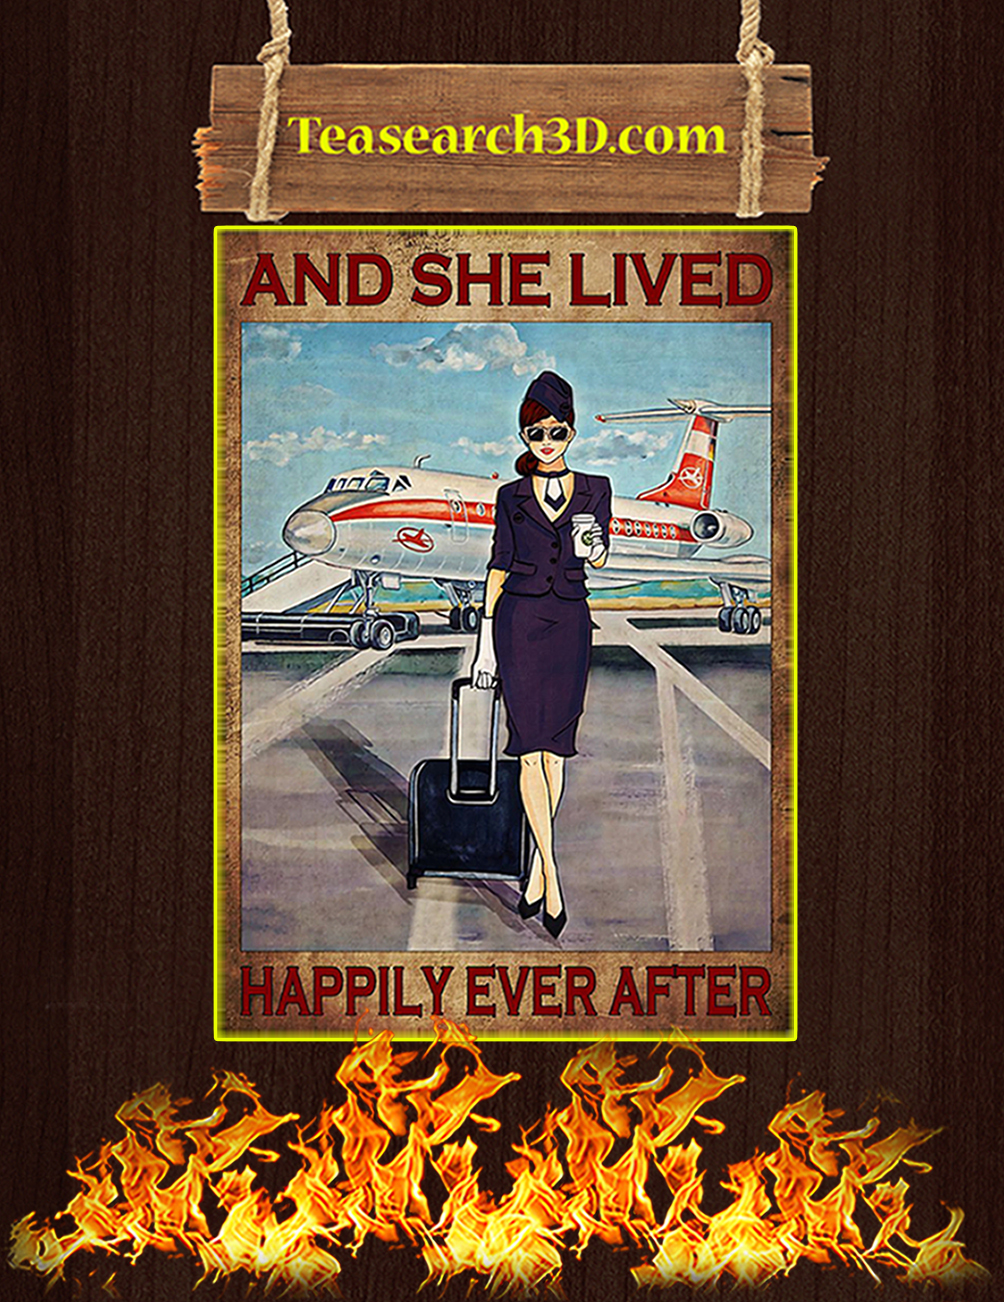 Flight attendant and she lived happily ever after black poster 1